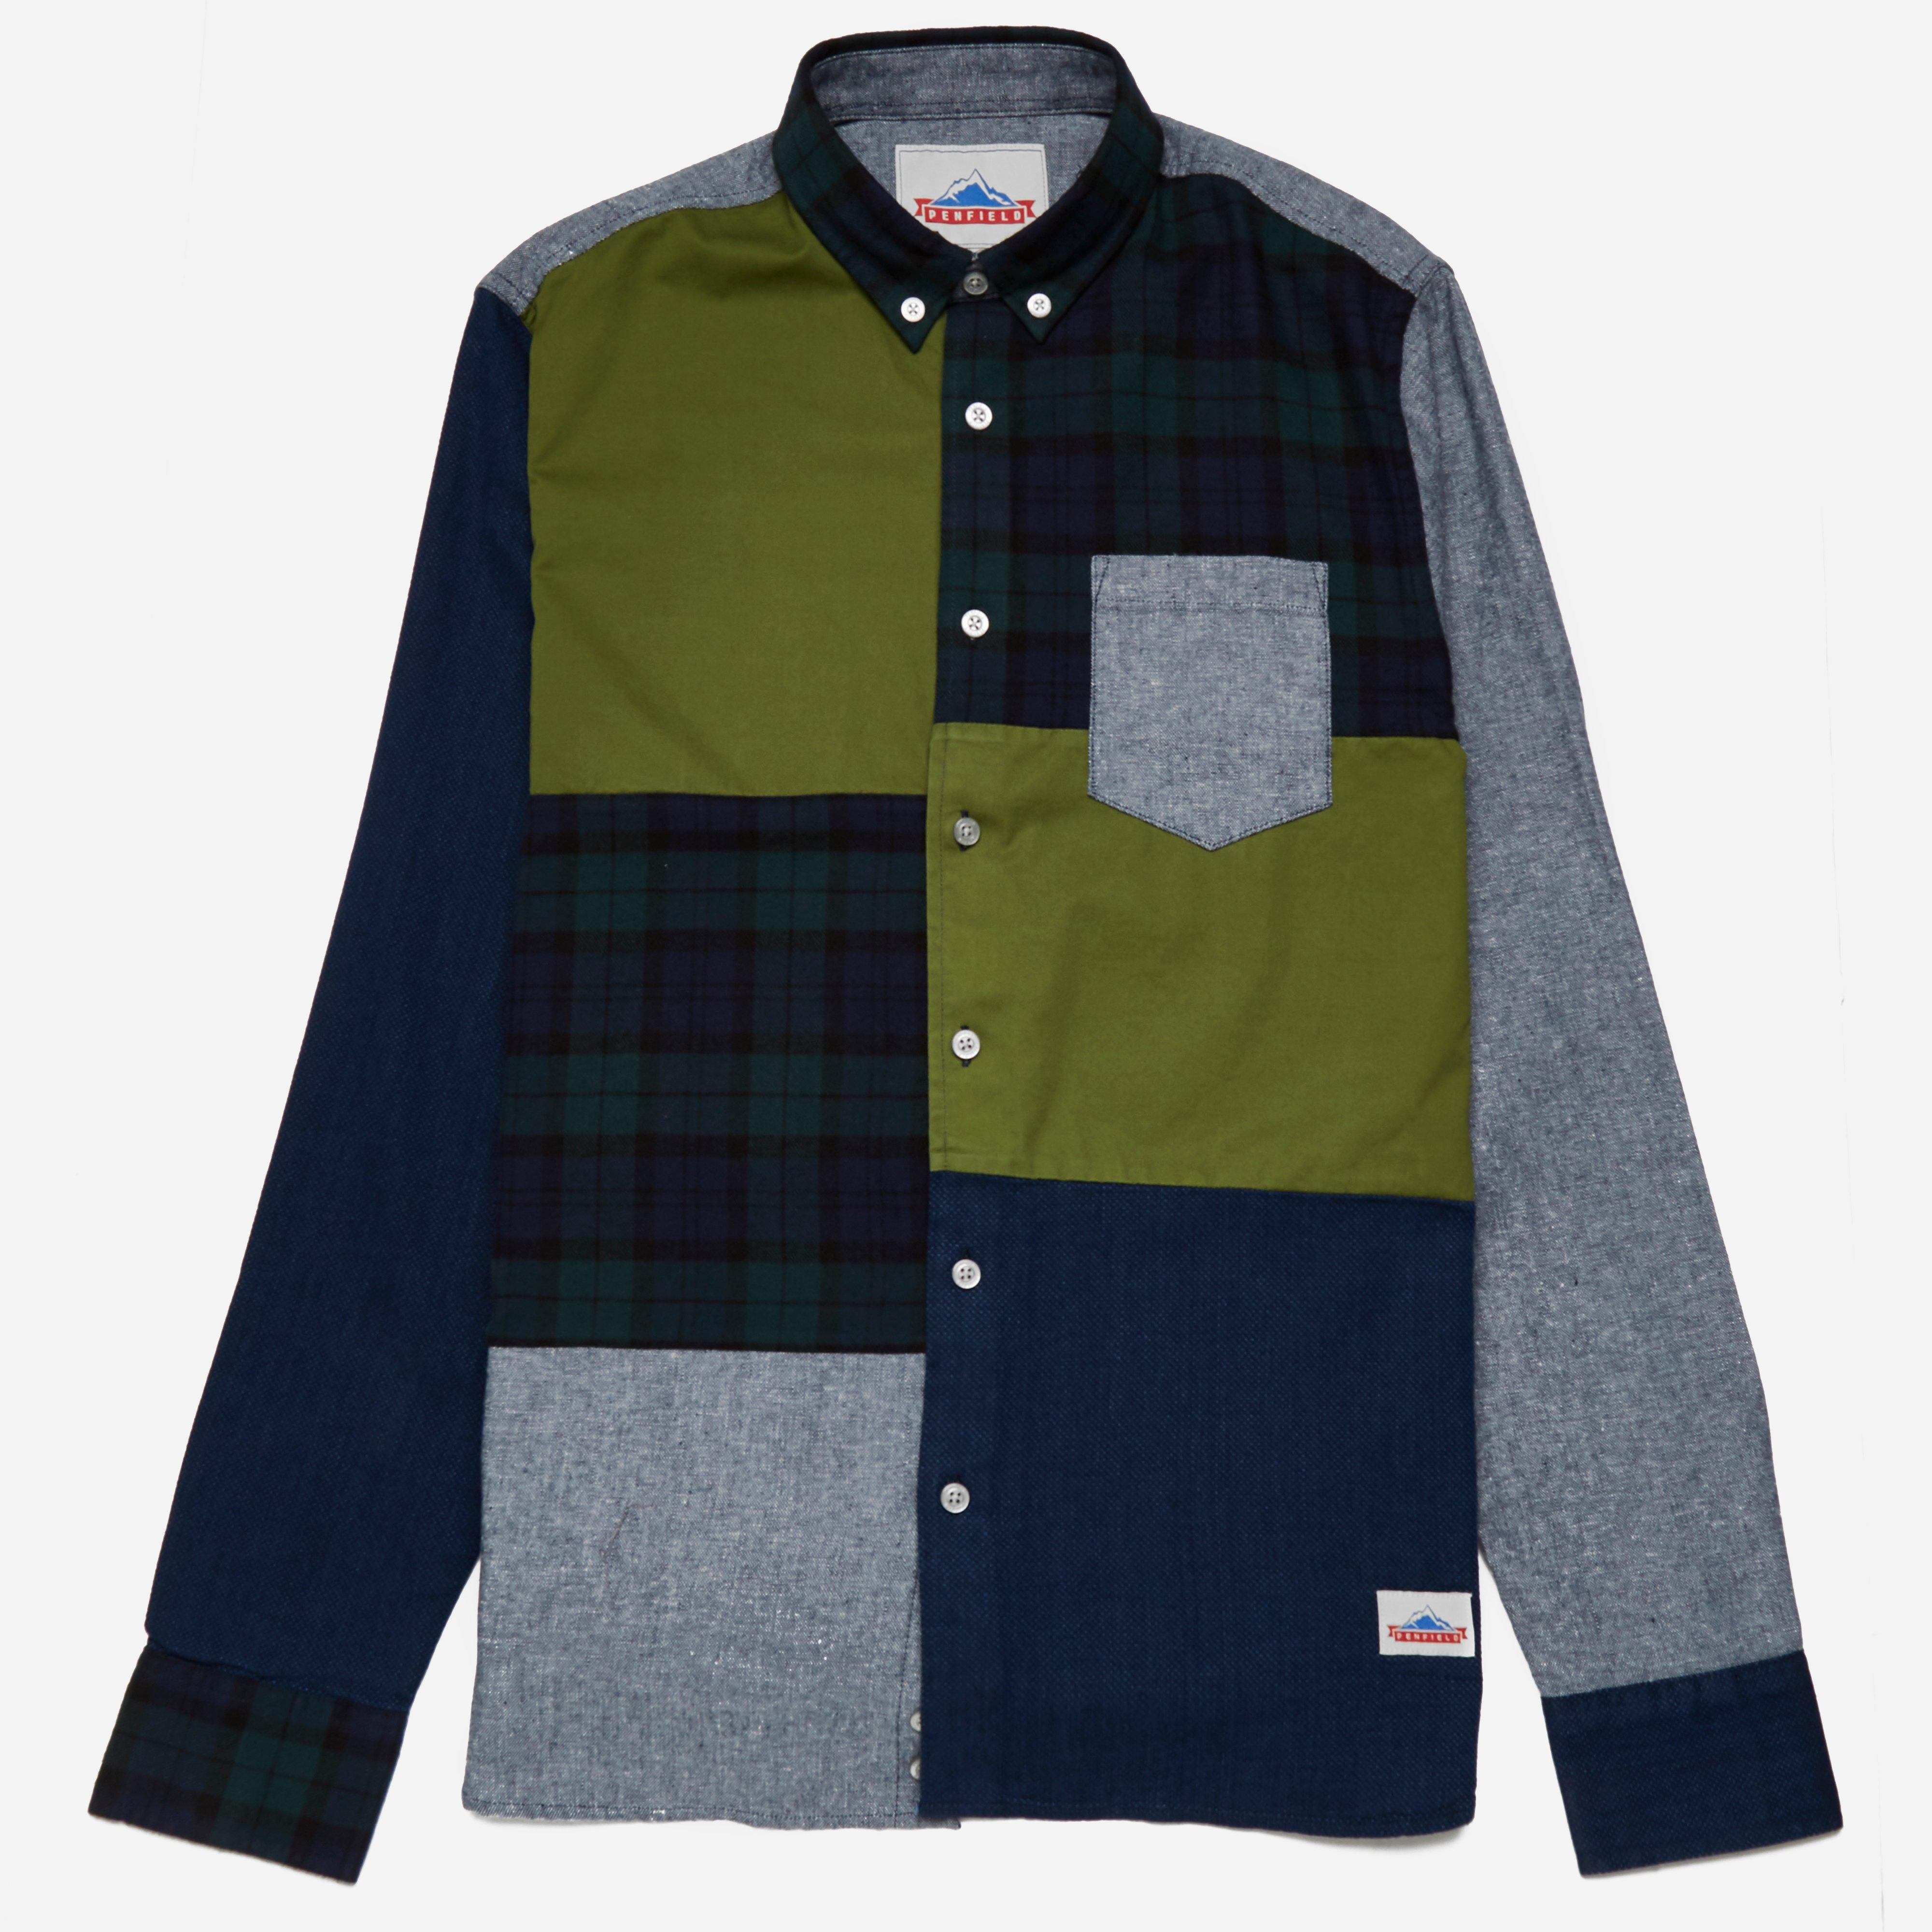 Penfield Crowley Patchwork Shirt